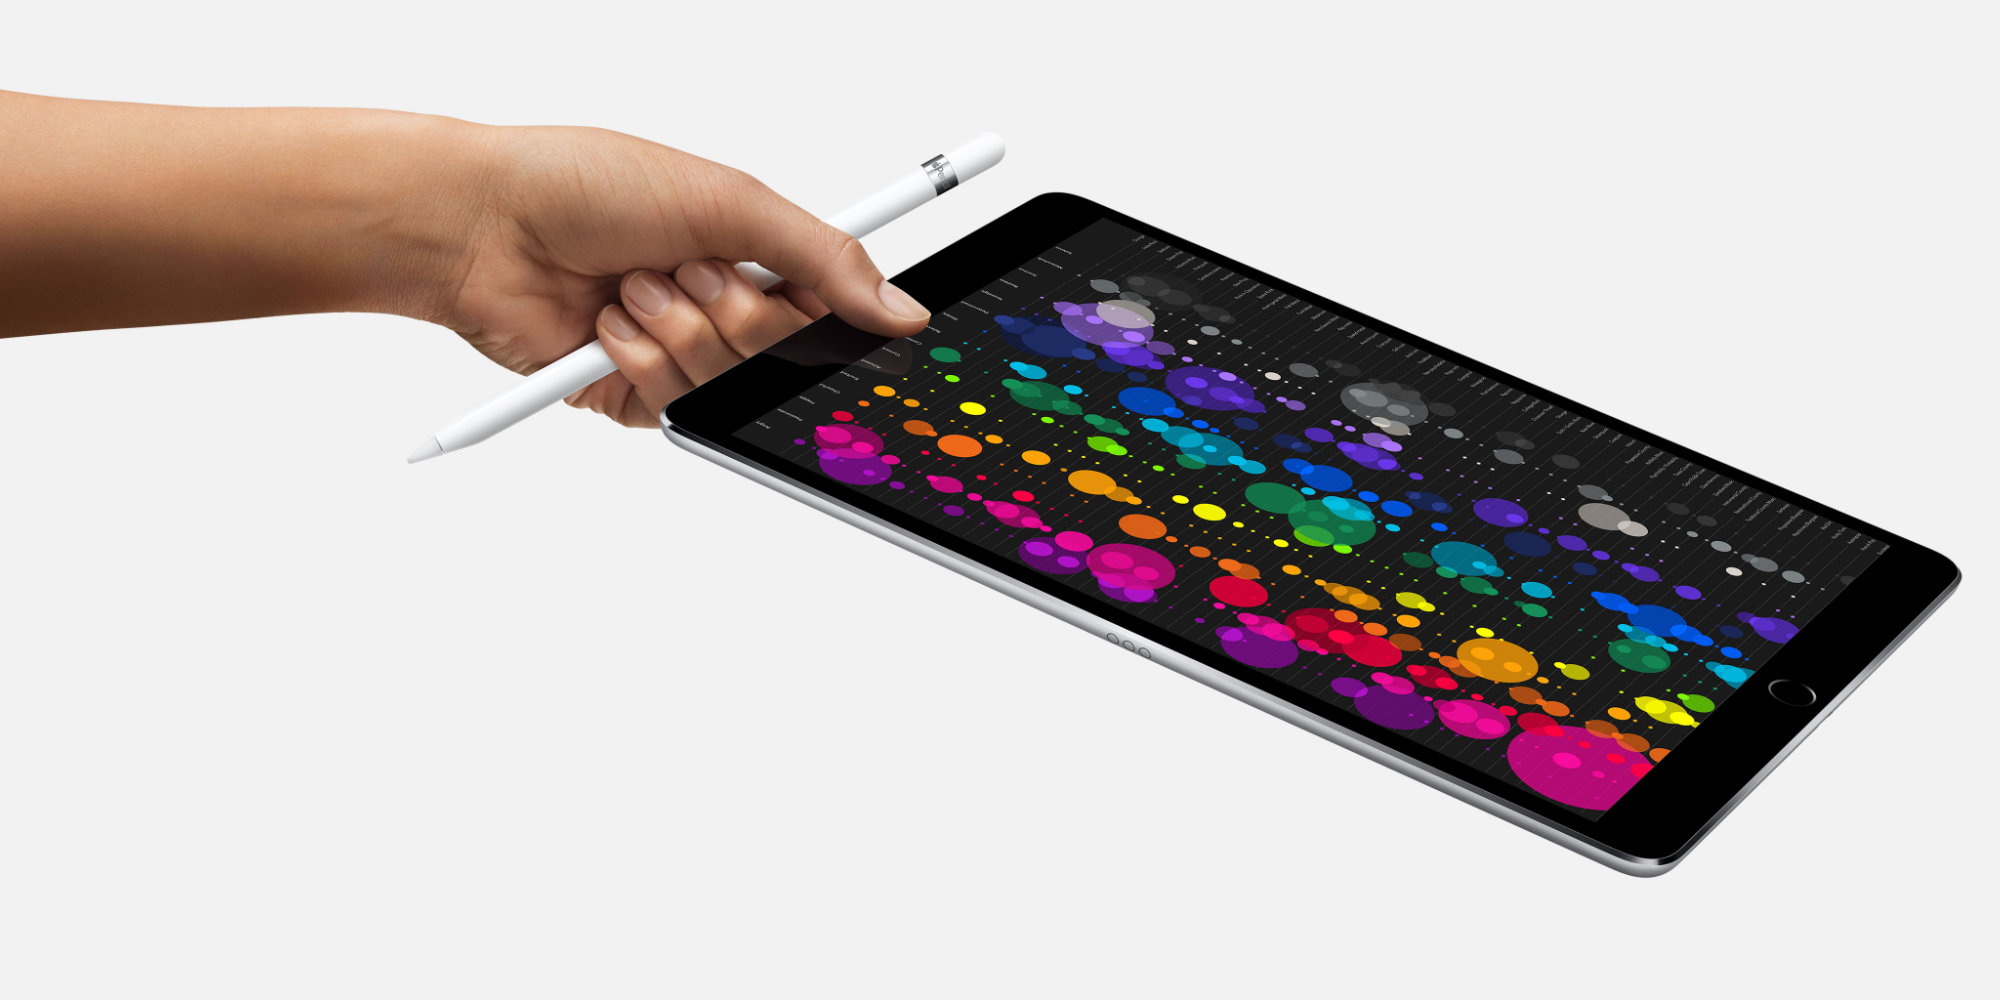 Amazon takes nearly $150 off Apple's 10.5-inch iPad Pro, deals from $500